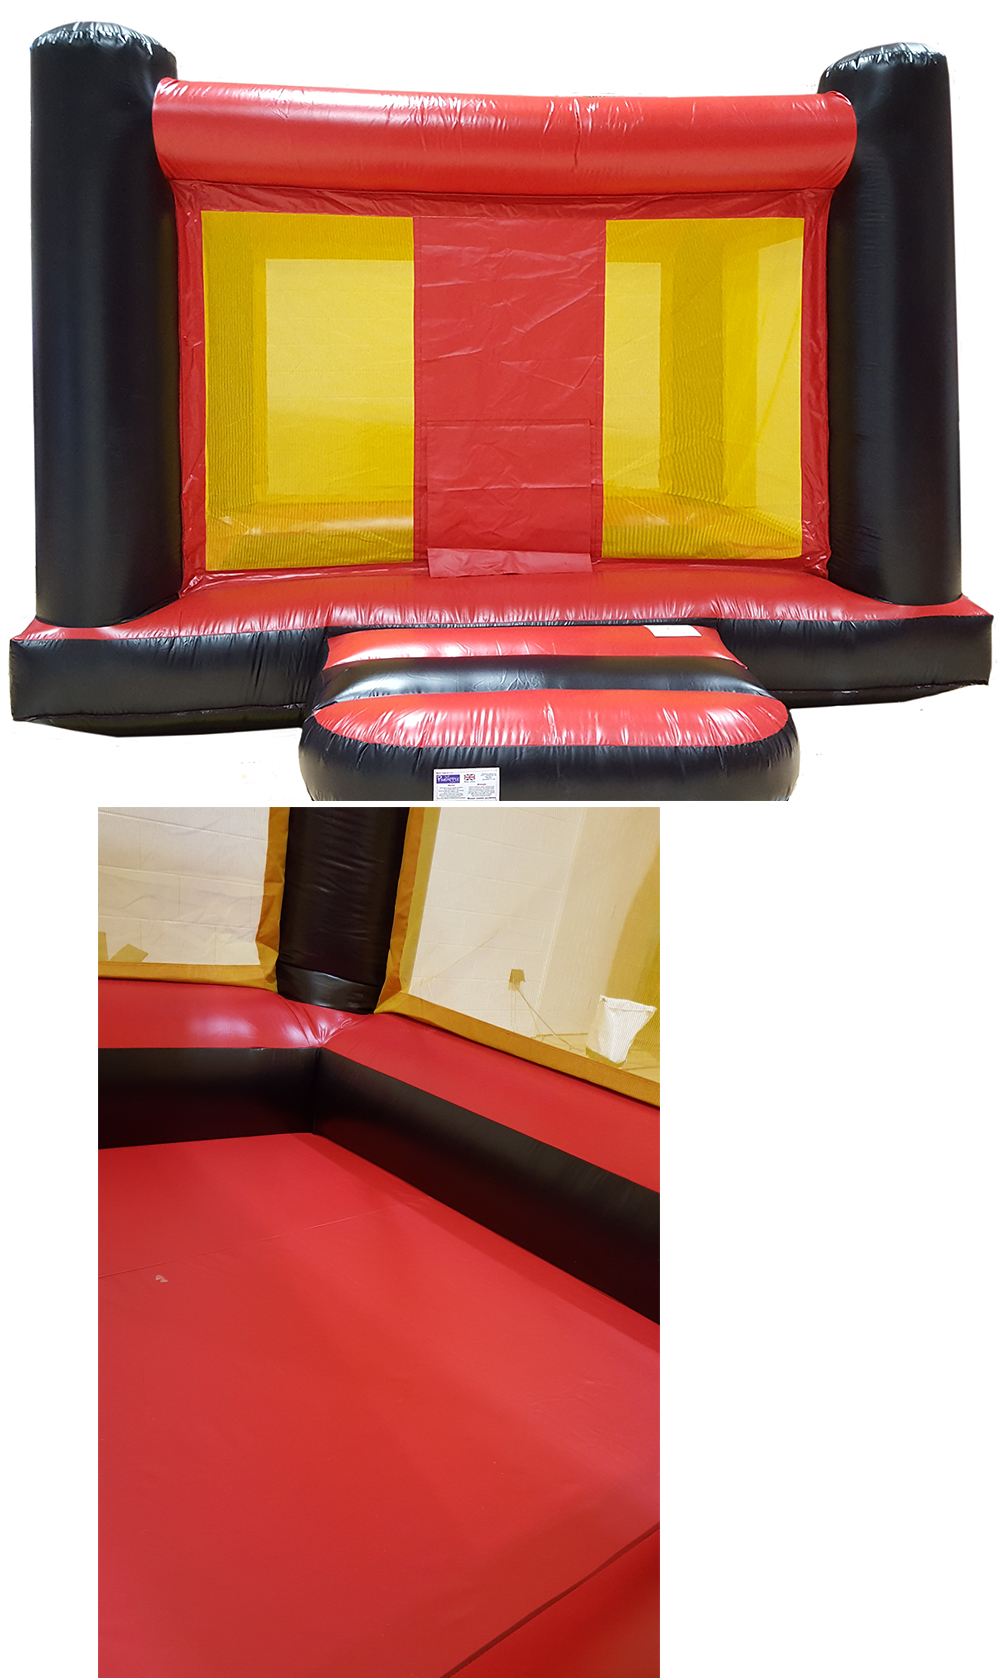 Bouncy Castle Sales - BC543 - Bouncy Inflatable for sale